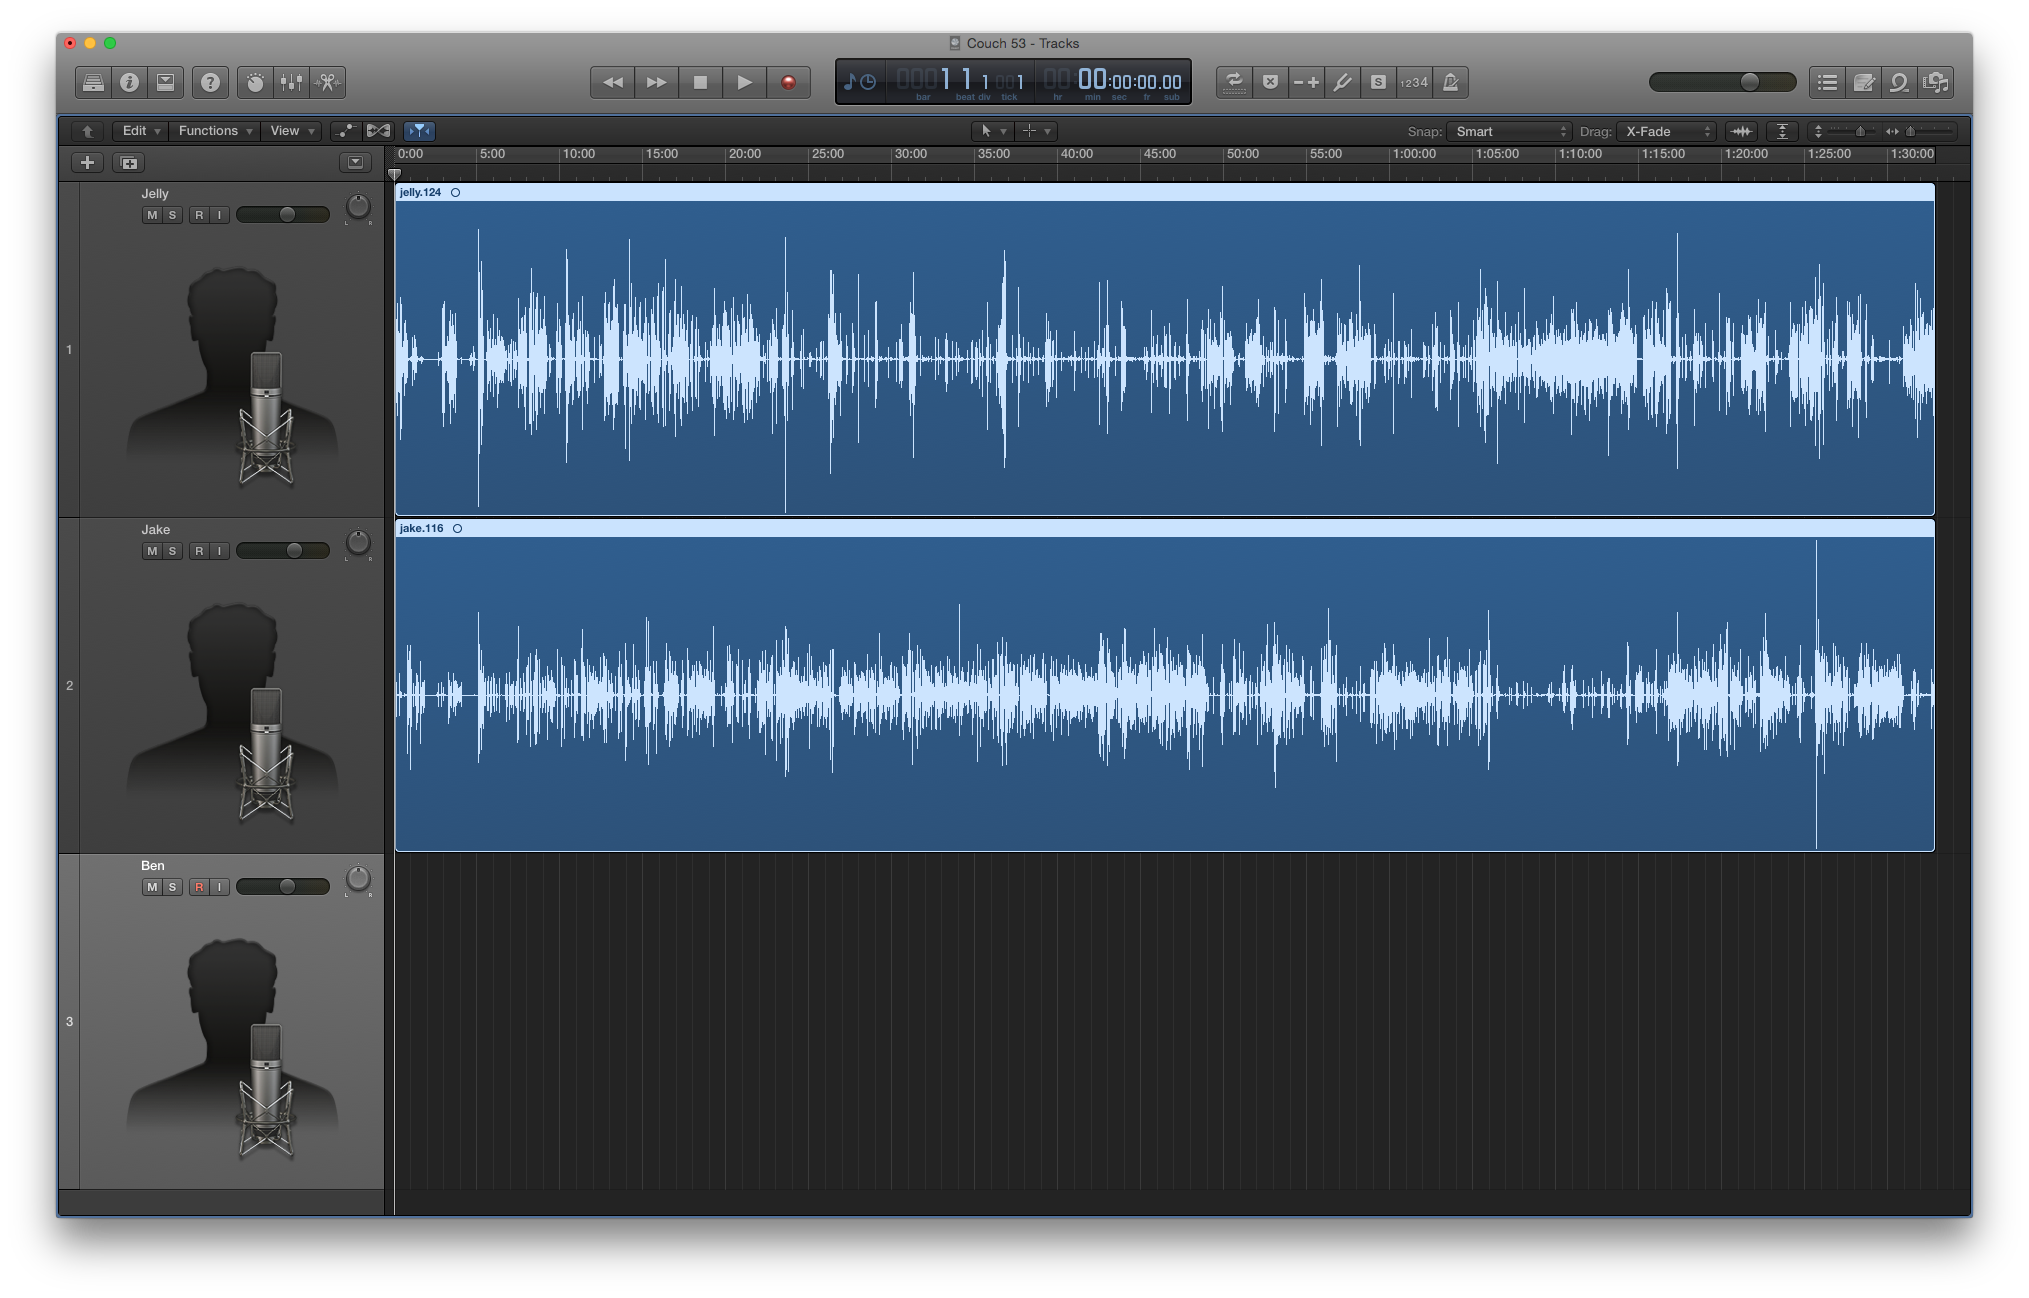 The unedited version of Mobile Couch 53 in Logic Pro X.